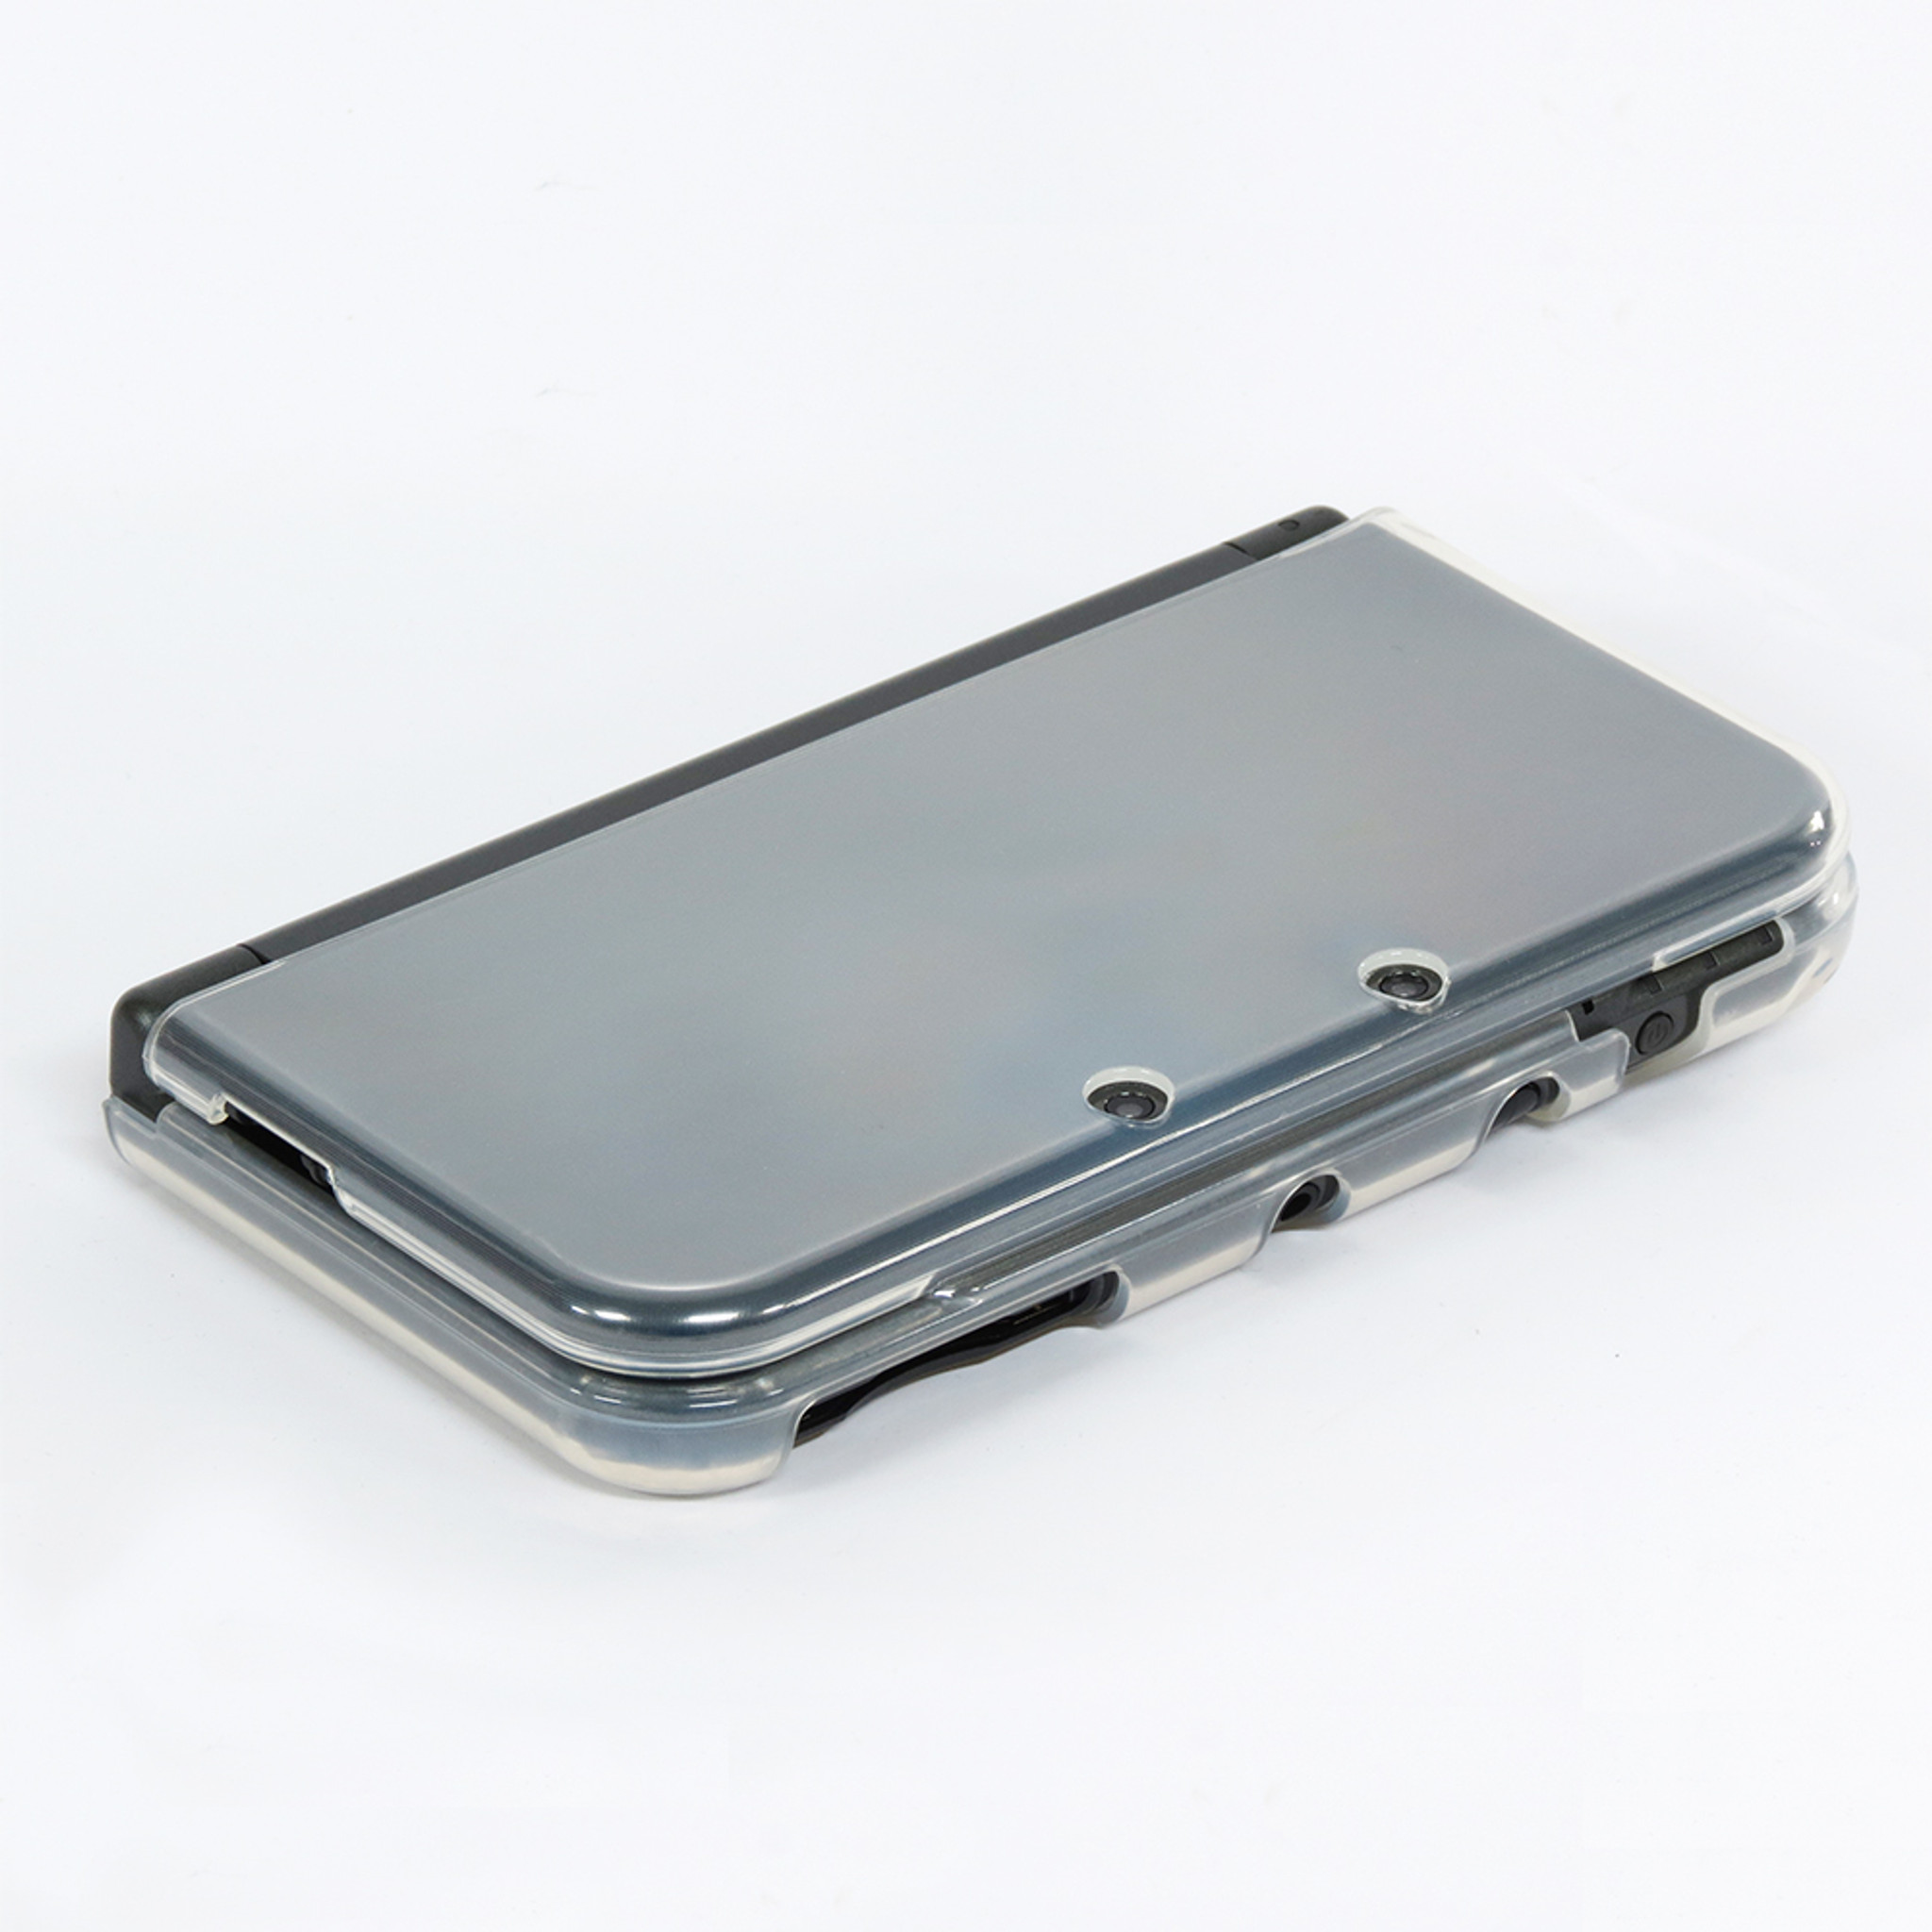 Duraflexi Protector (Clear) for Nintendo NEW 3DS XL